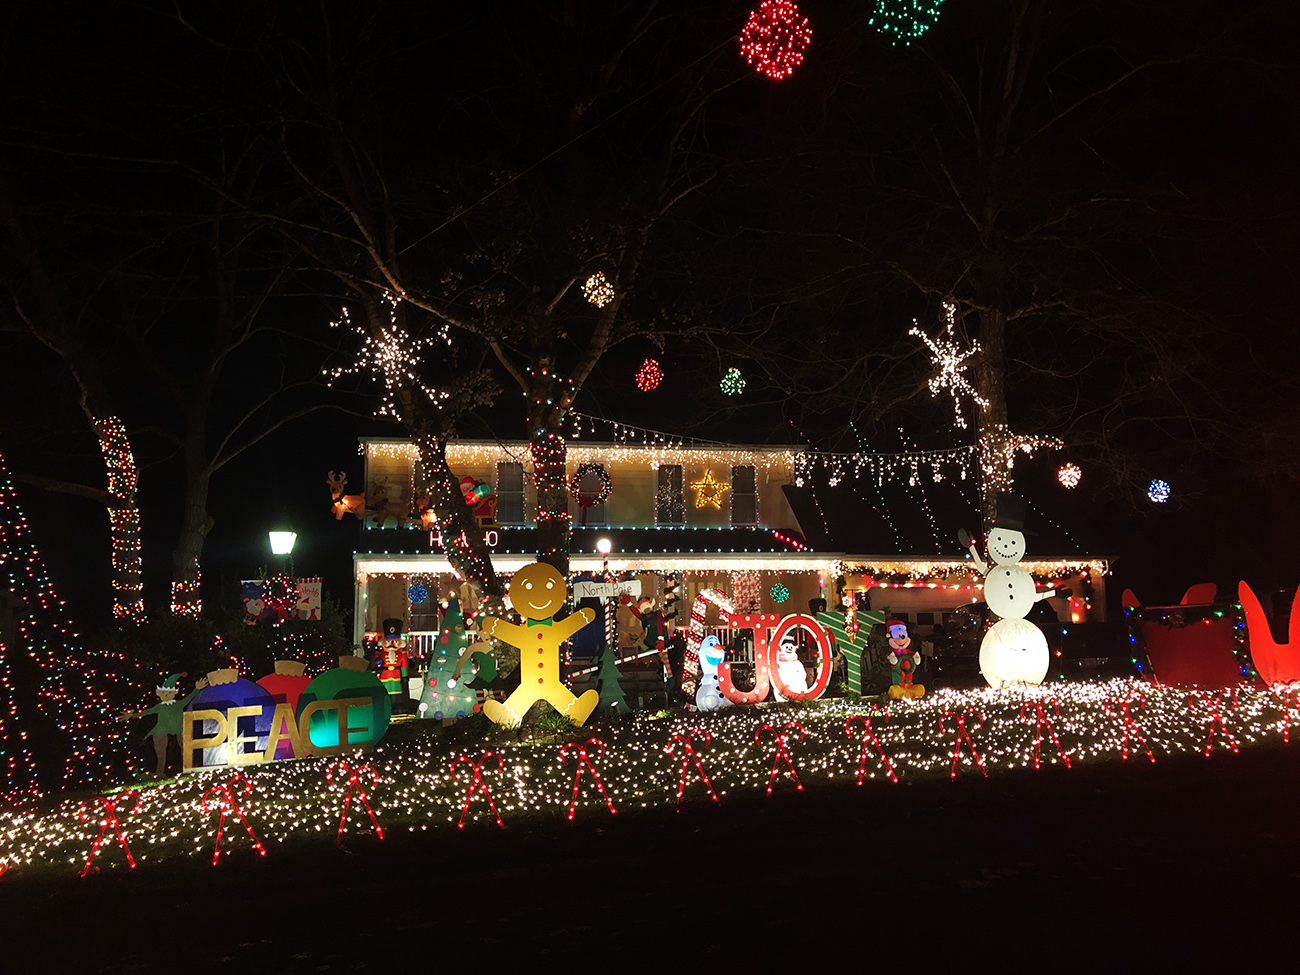 Best Place For Christmas Decorations 10 Best Places To See Christmas Lights In And Around Charlotte